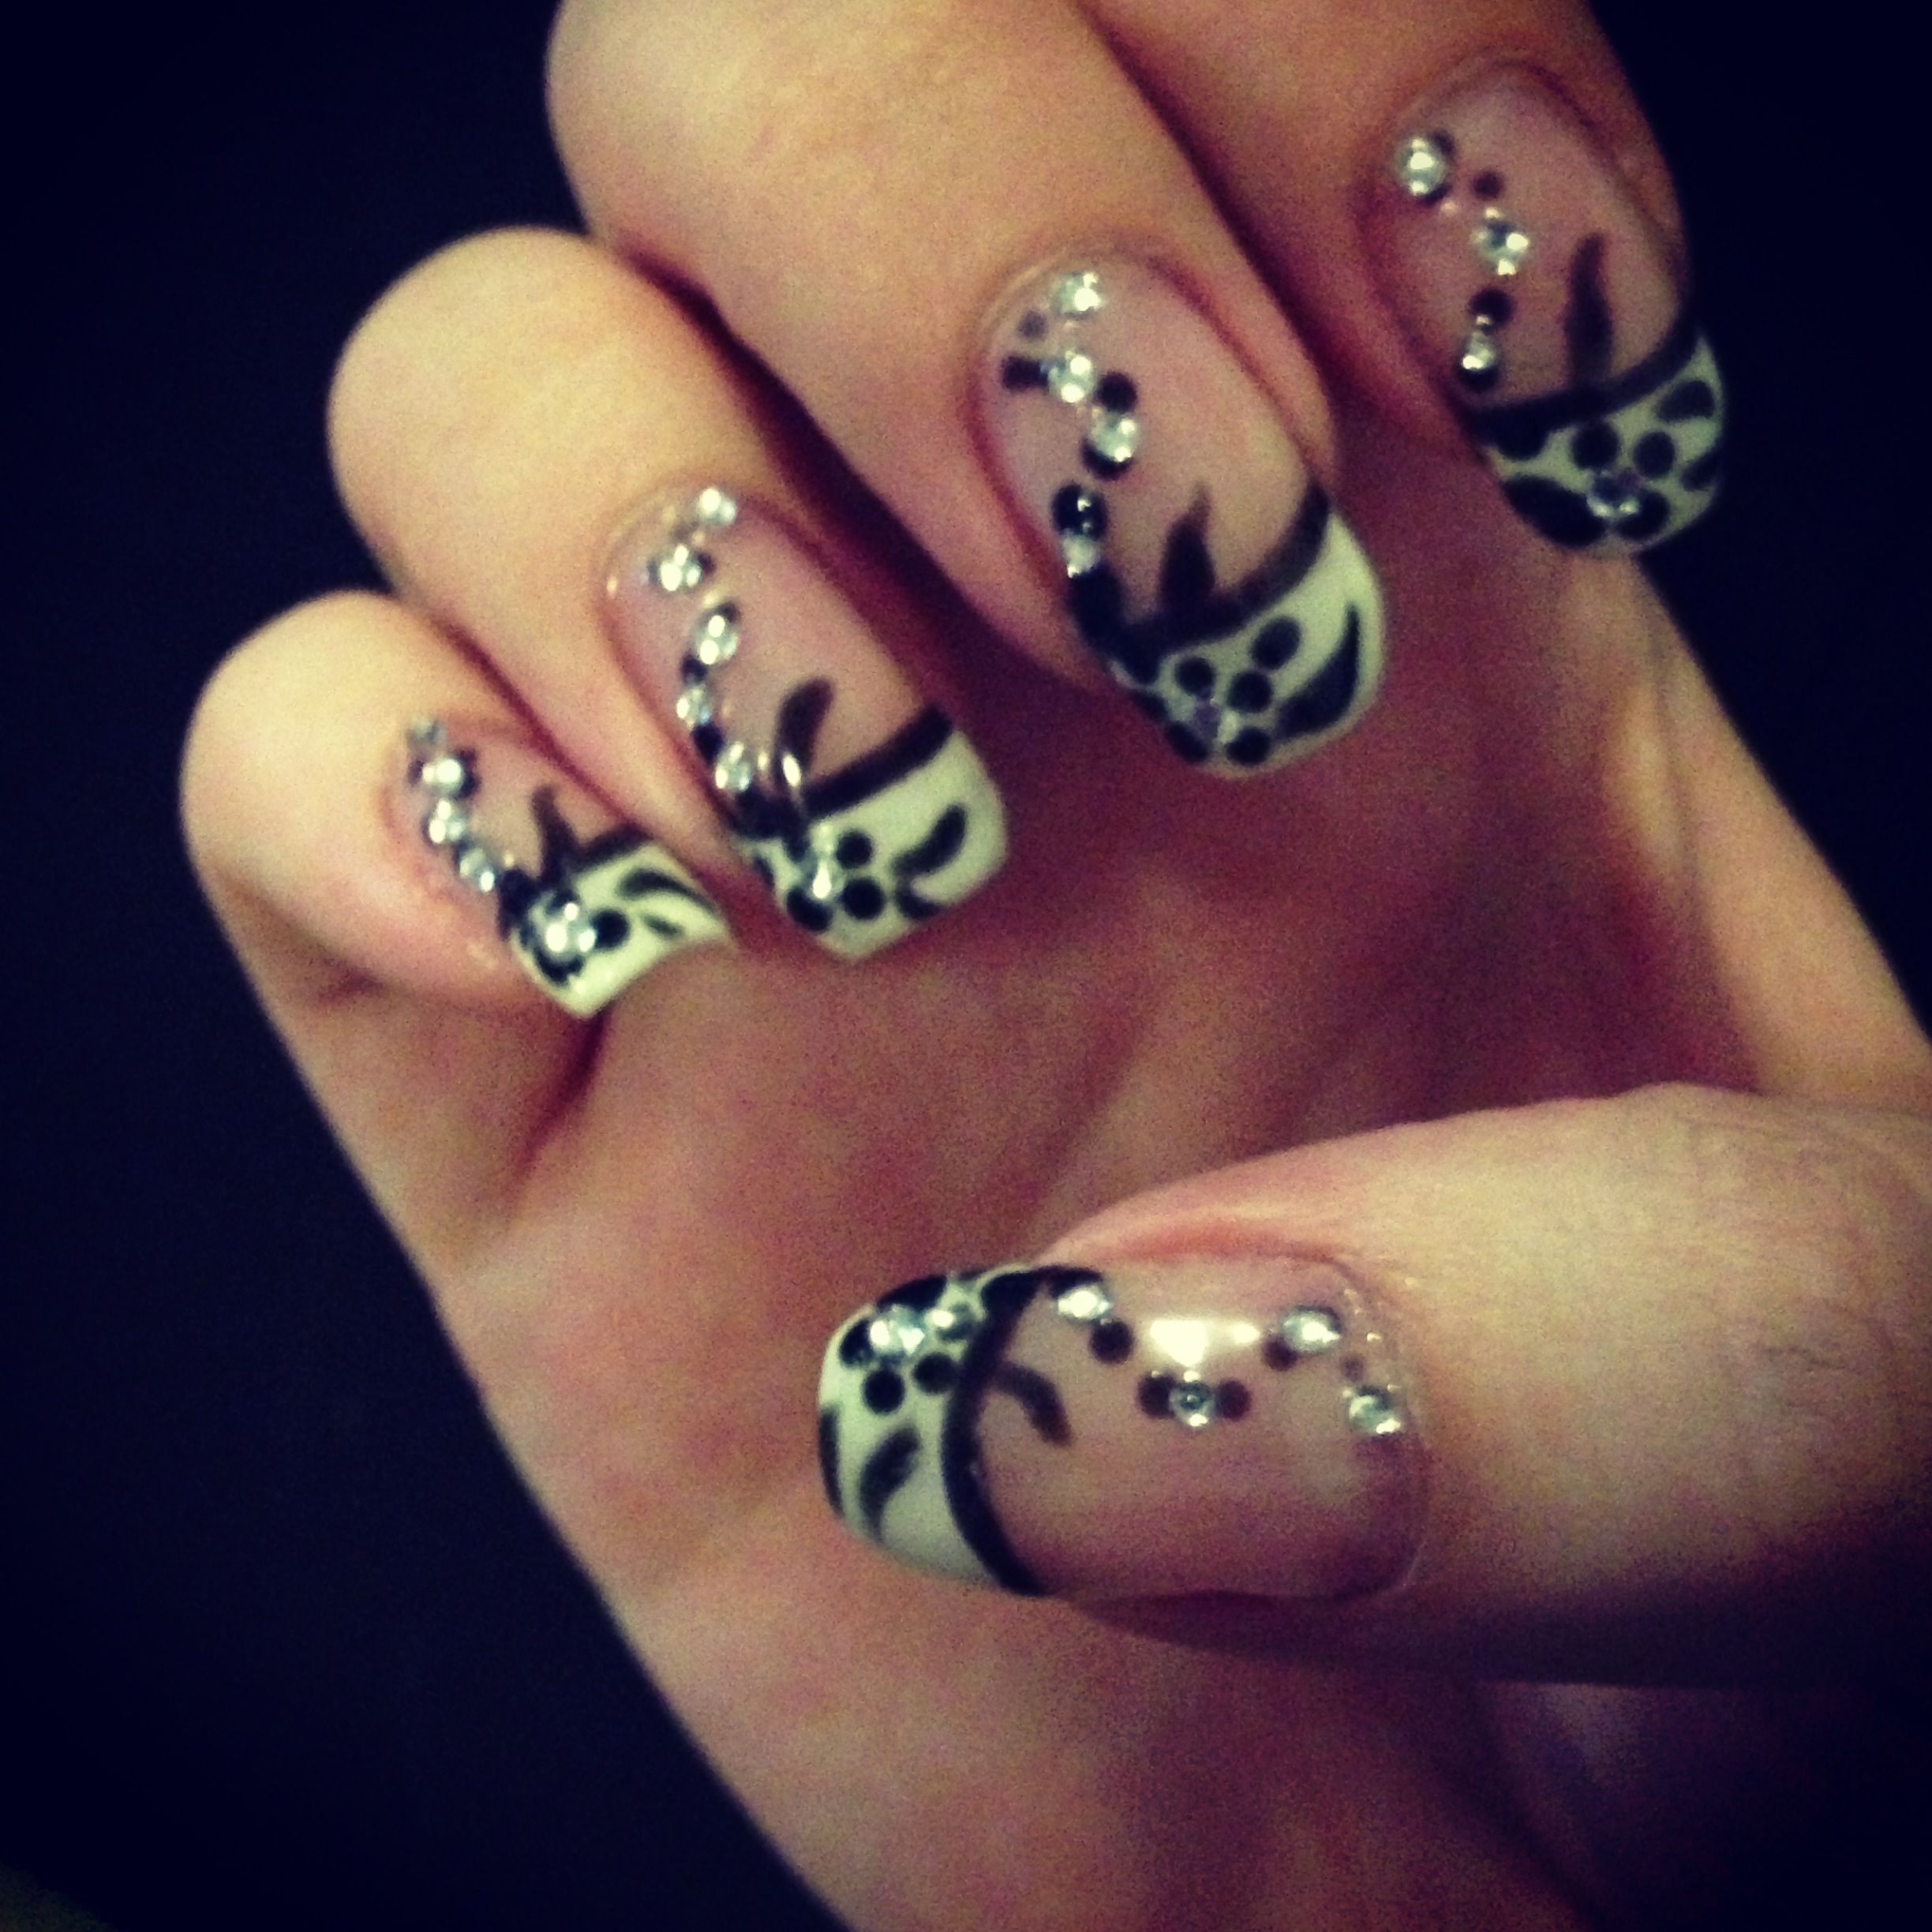 Black and white French gel nail design | My Nail Designs | Pinterest ...